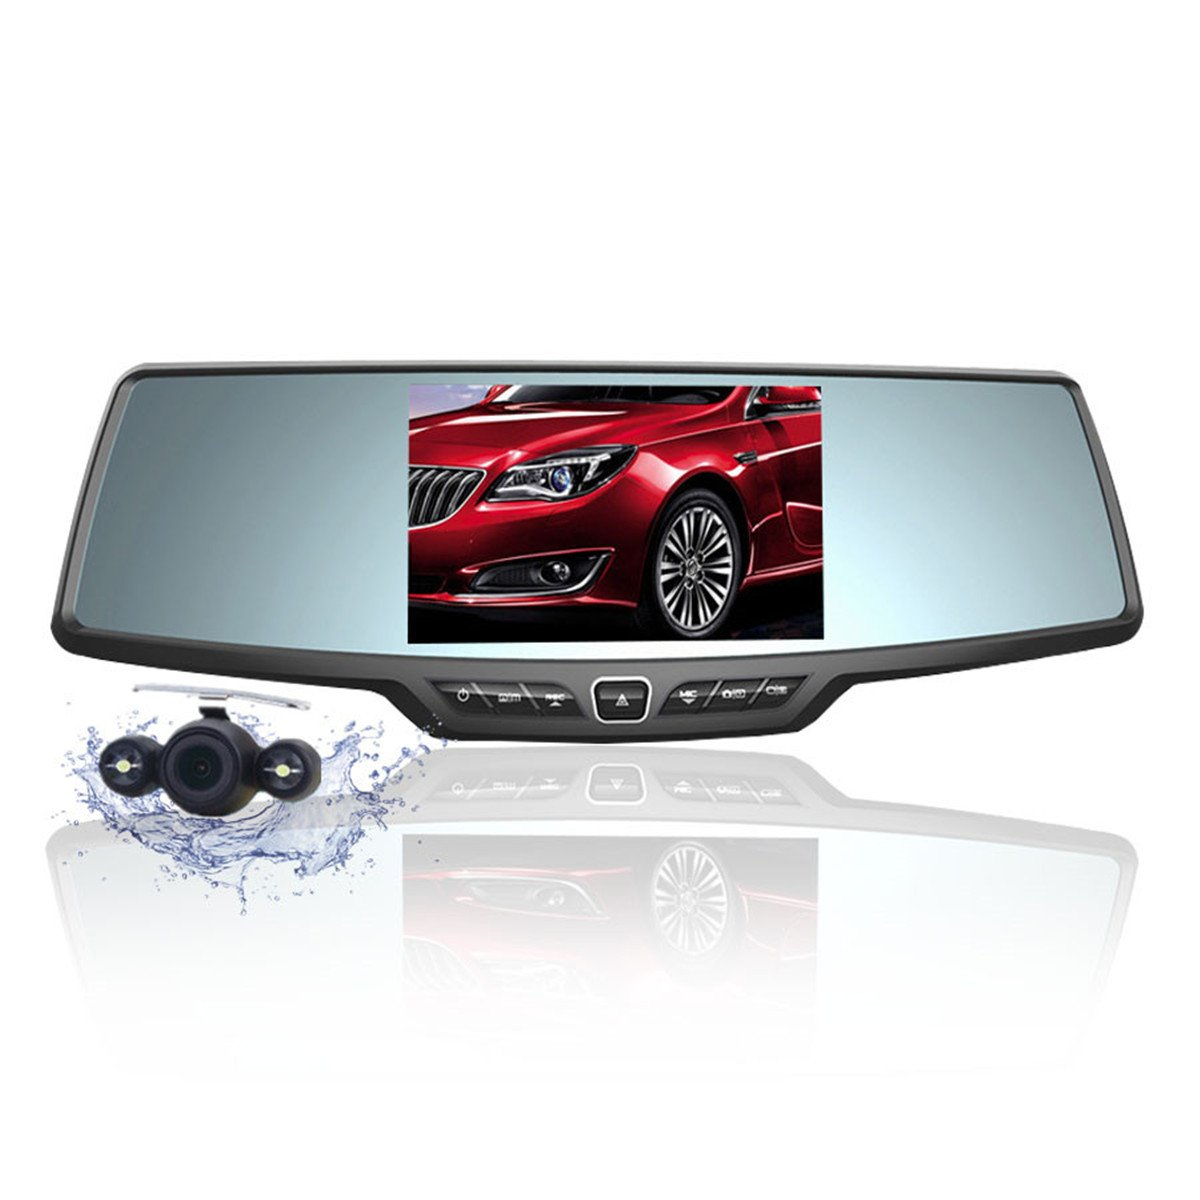 Dash Cam,4.3'' Full HD 1080P Rearview Mirror Dual Lens Video Recorder Car DVR 170 Degree Wide Angle, Loop Recording,G-Sensor,Parking Monitor,Reverse Image